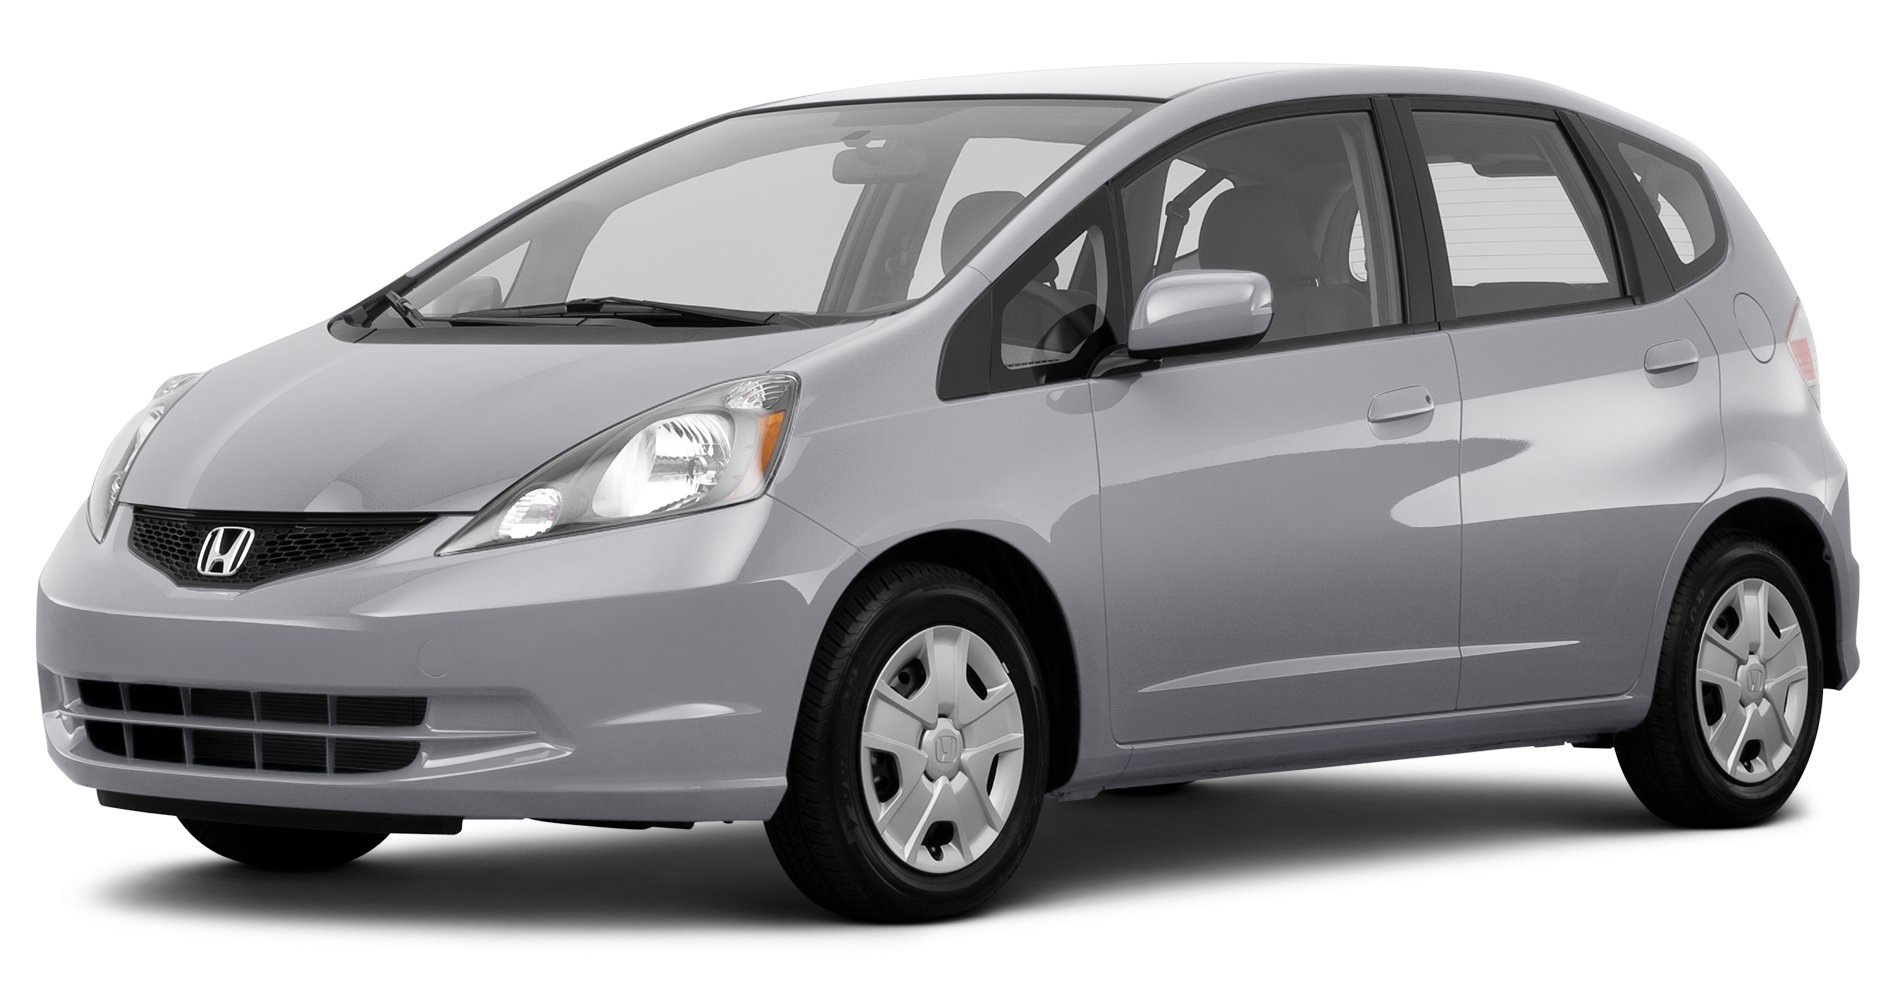 2013 Honda Fit, 5-Door Hatchback Automatic Transmission ...